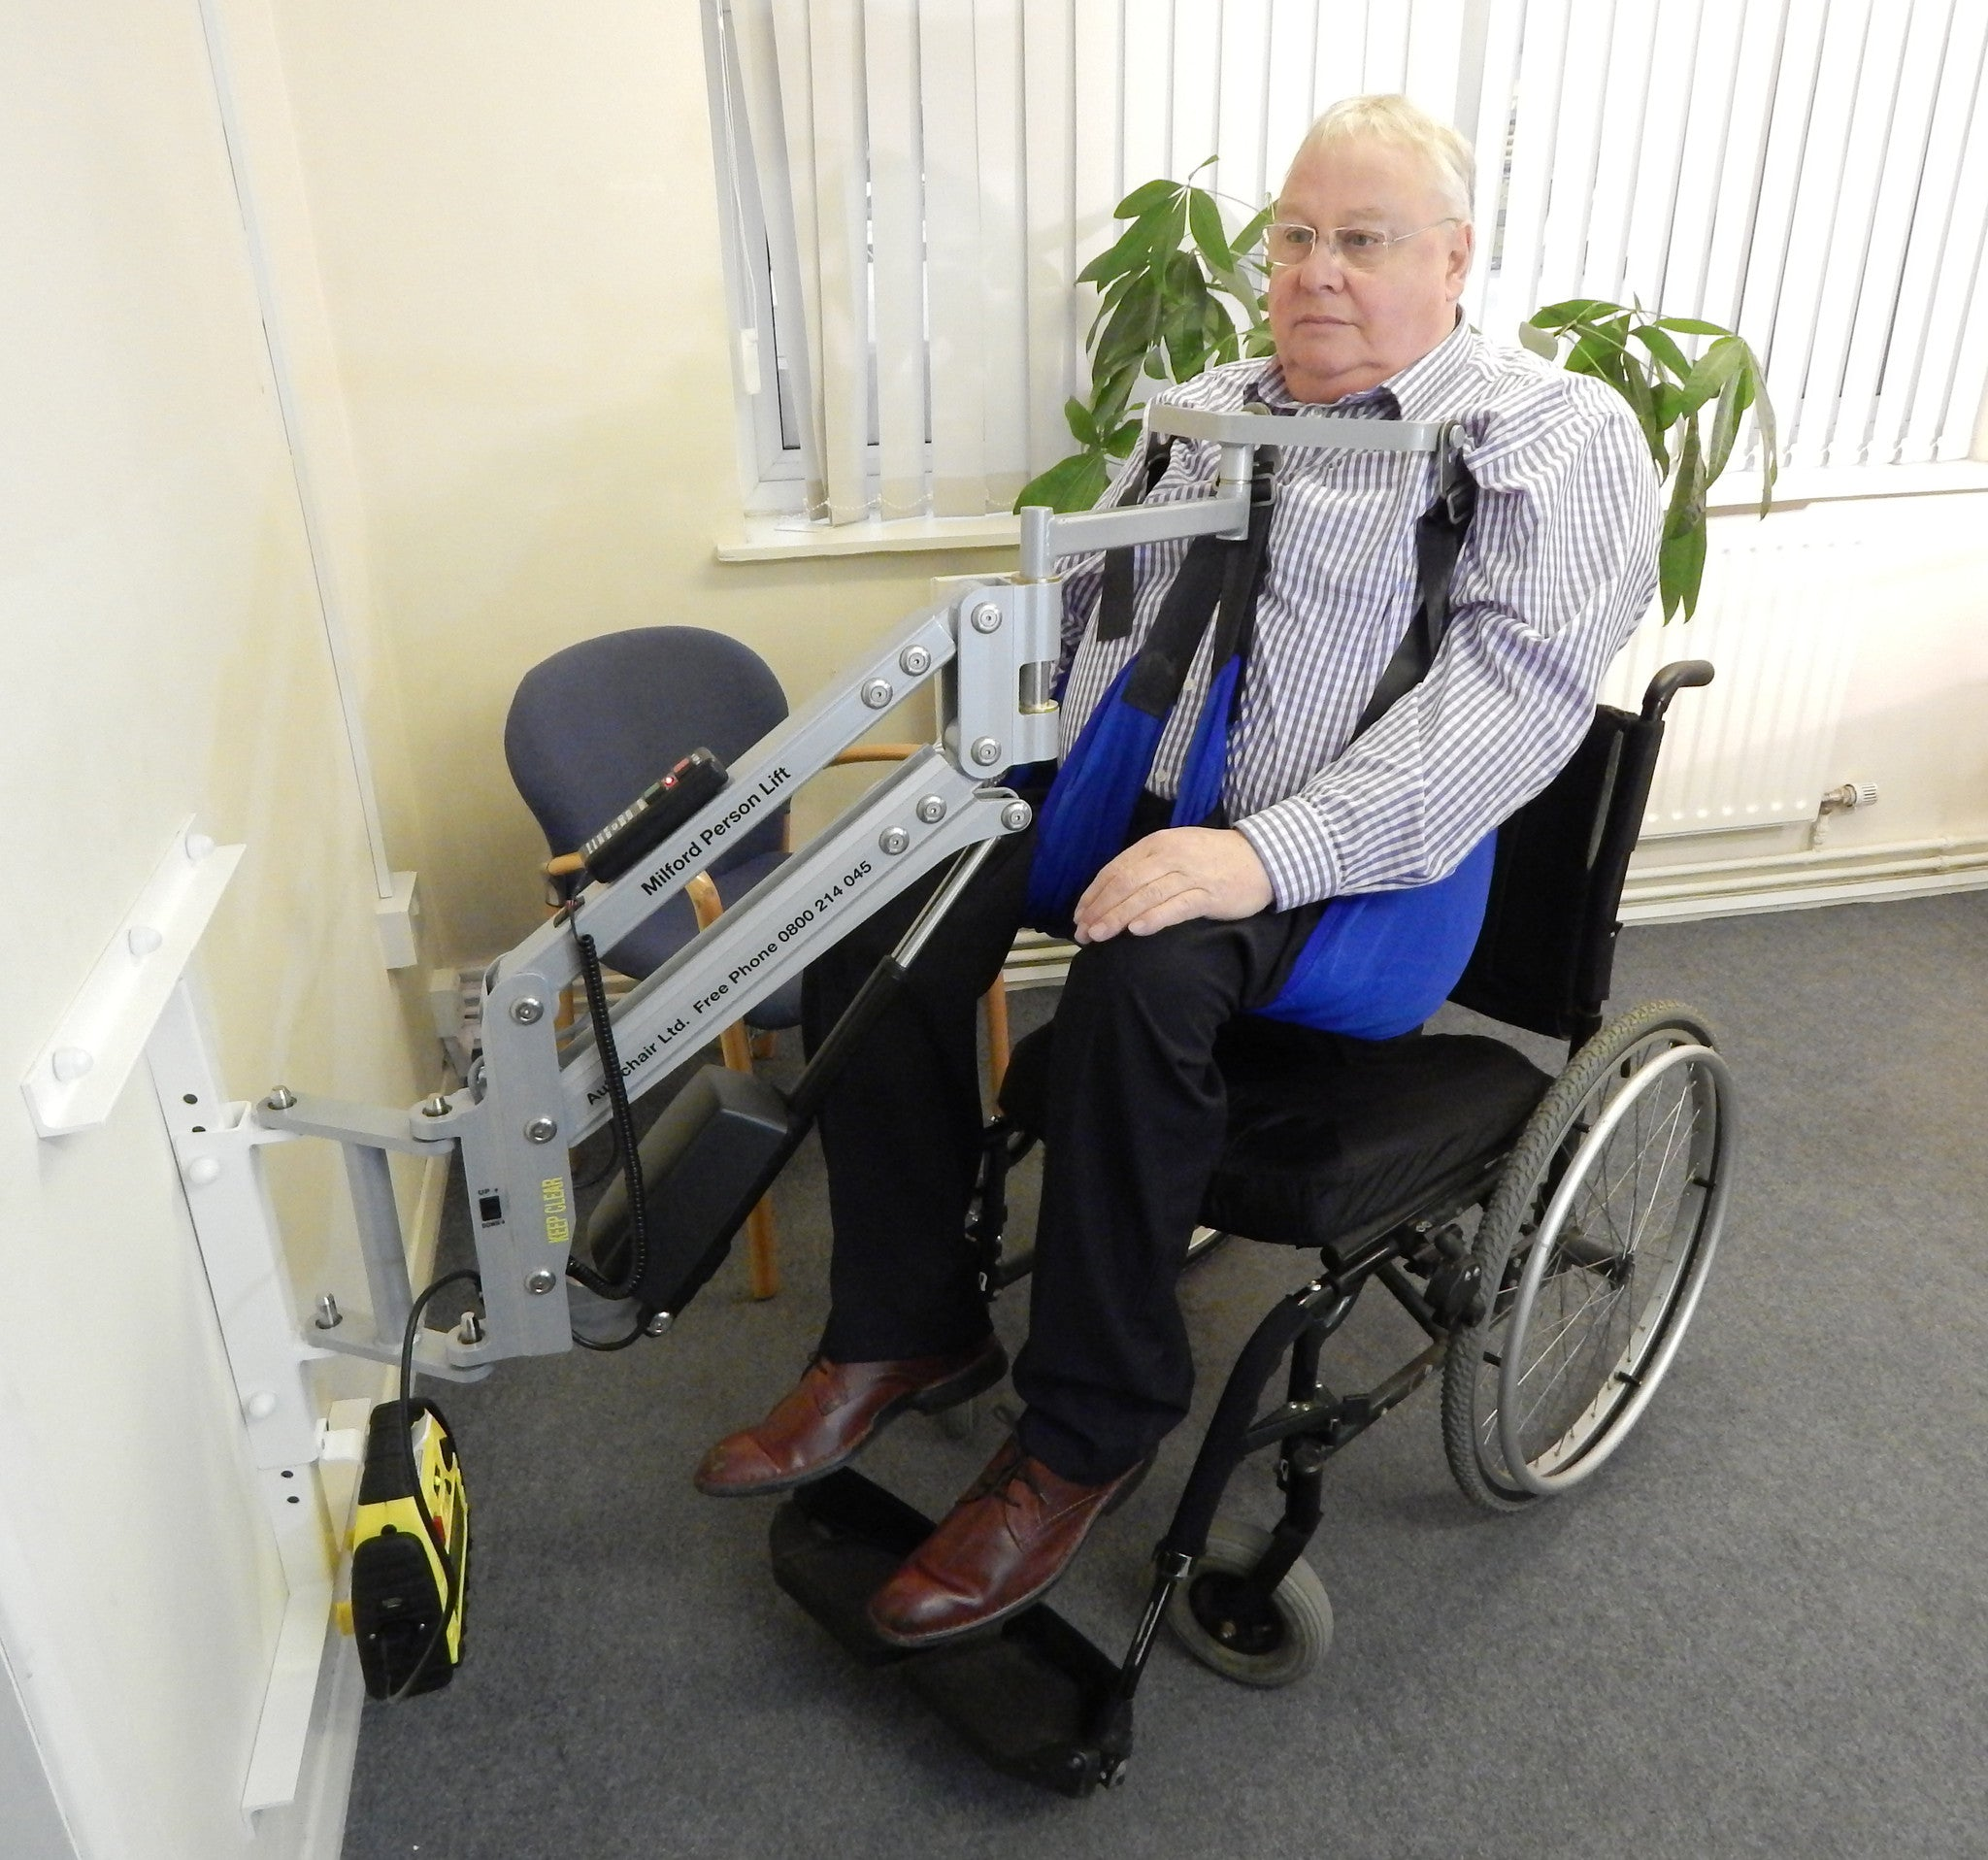 Milford Patient Lift by Pride Mobility – Safe Home Pro